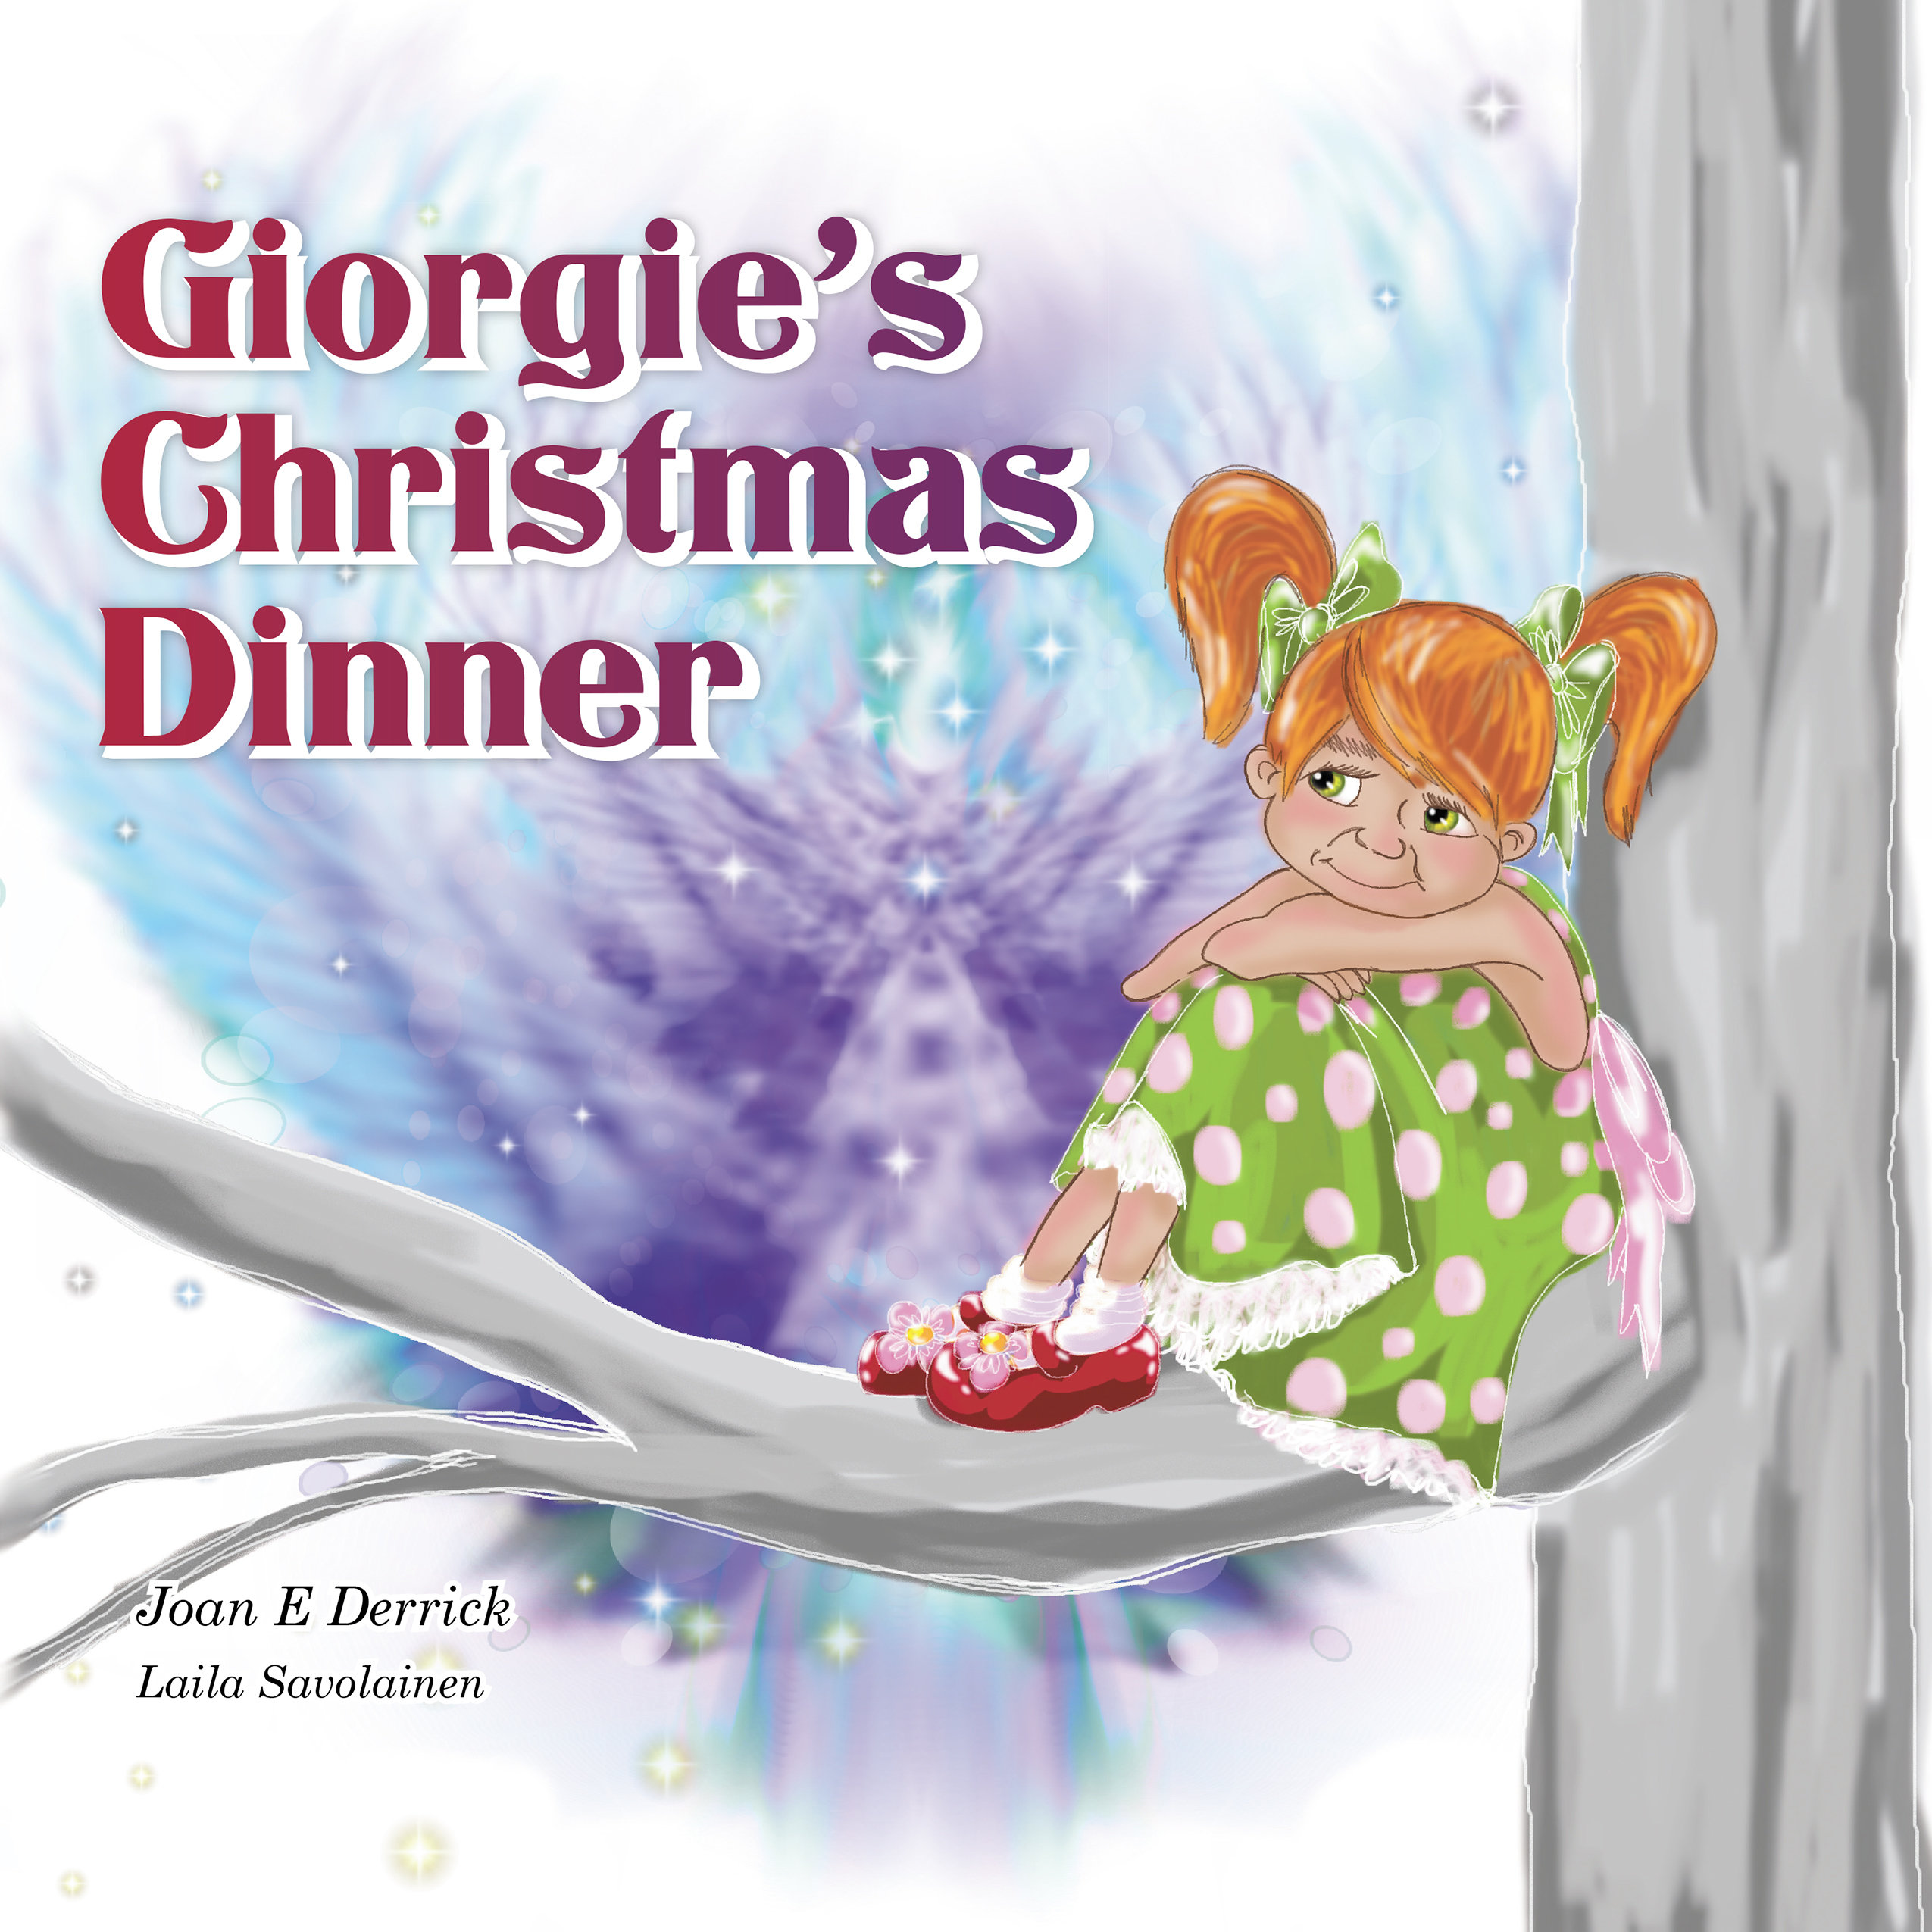 Giorgie's Christmas Dinner- Hard cover 00005